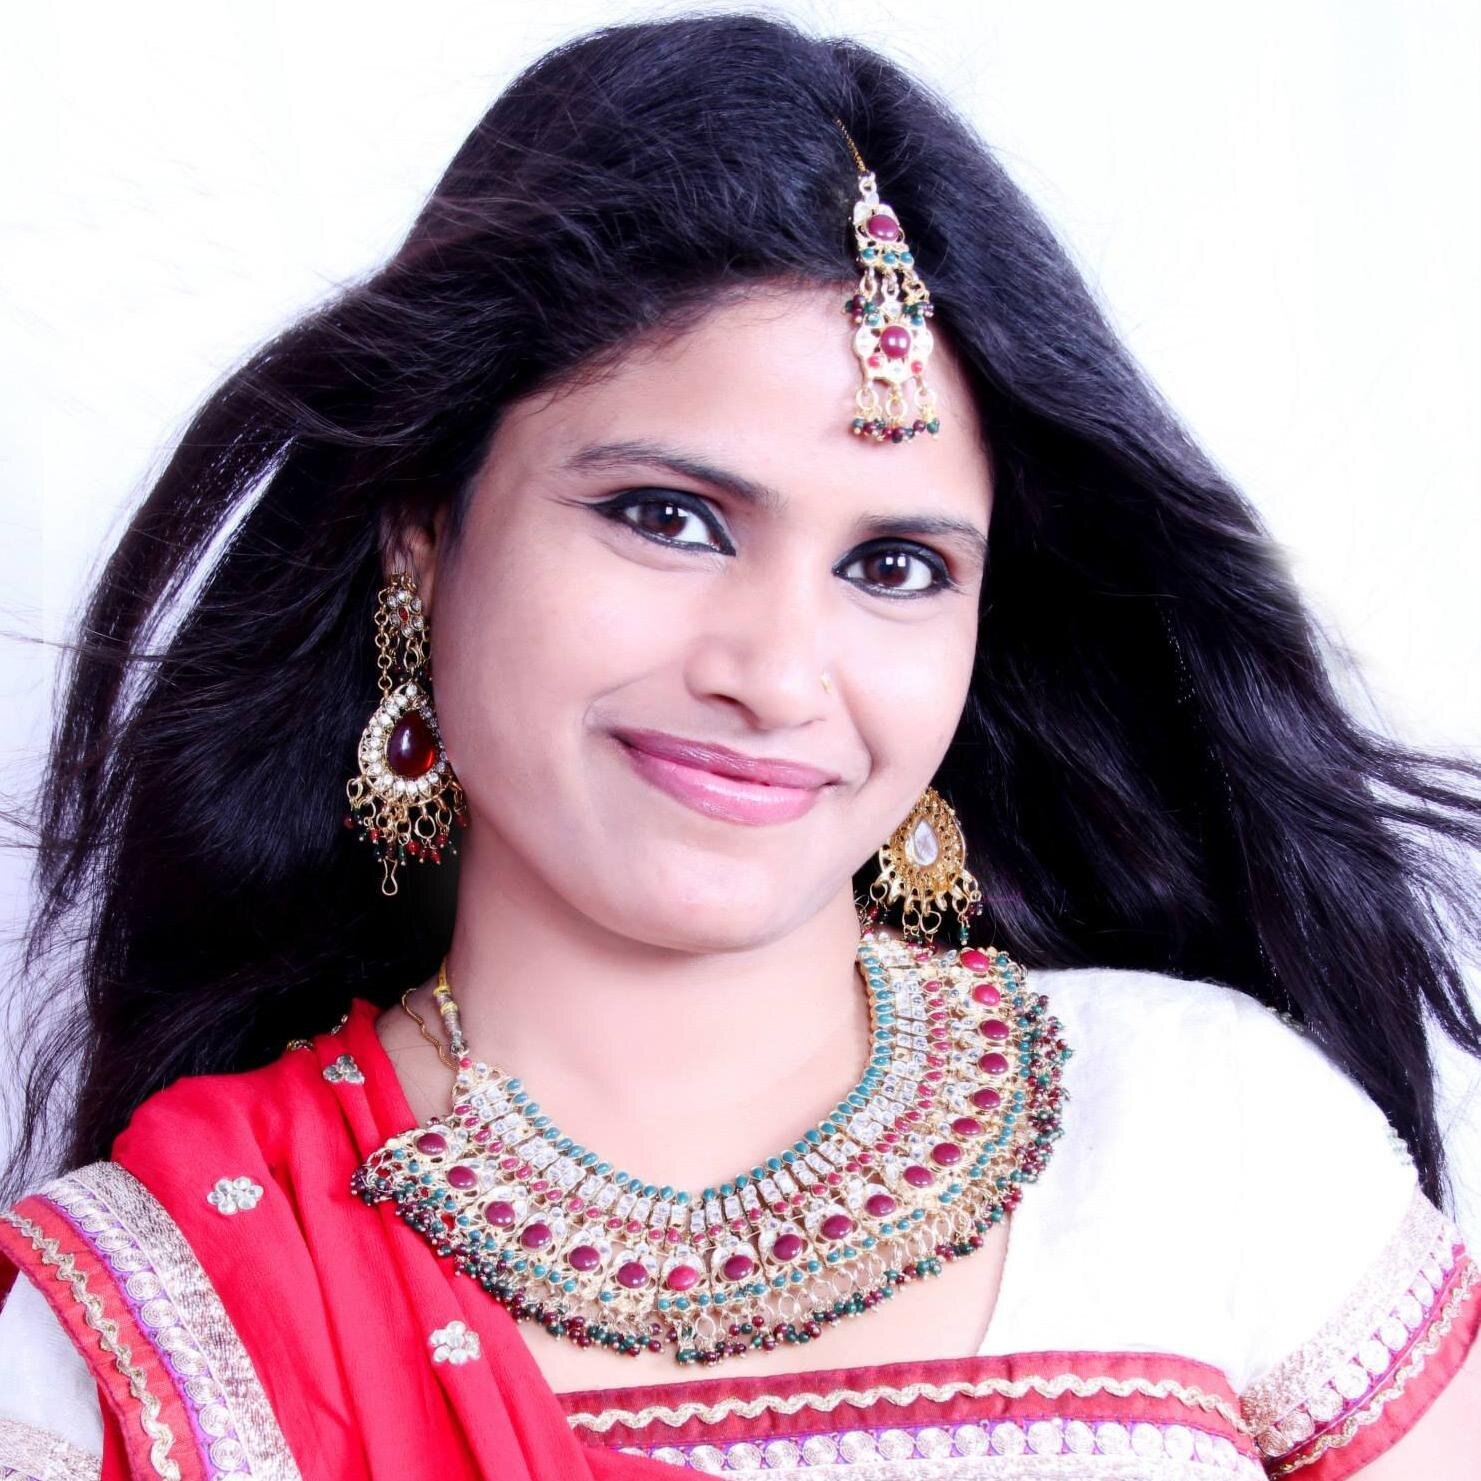 List Of Female Singers List Of Top Popular Bhojpur Female Singers Of All Time With Photos